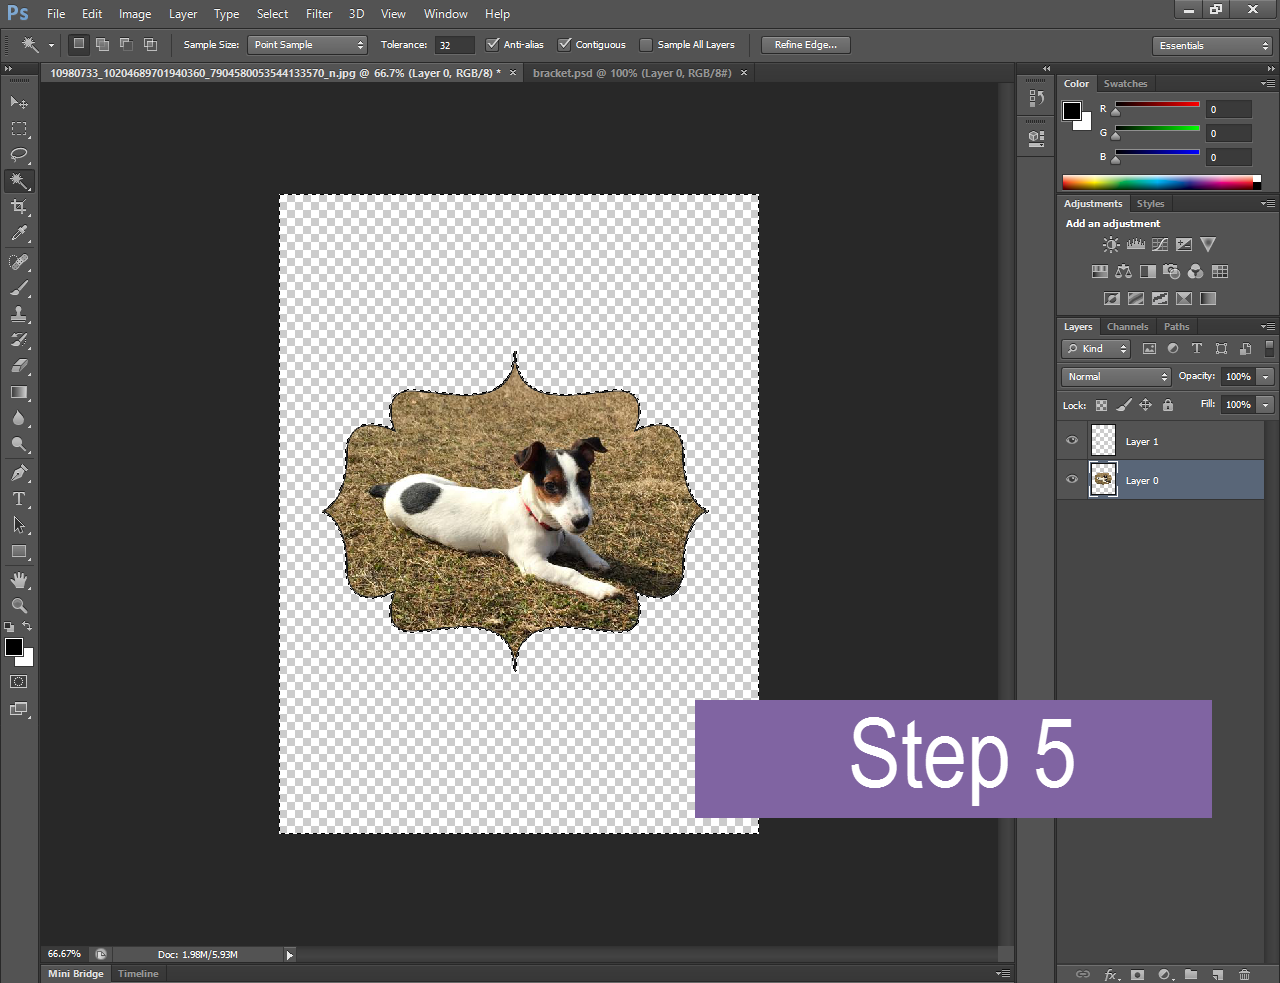 a bracket shaped image of a puppy open in Photoshop